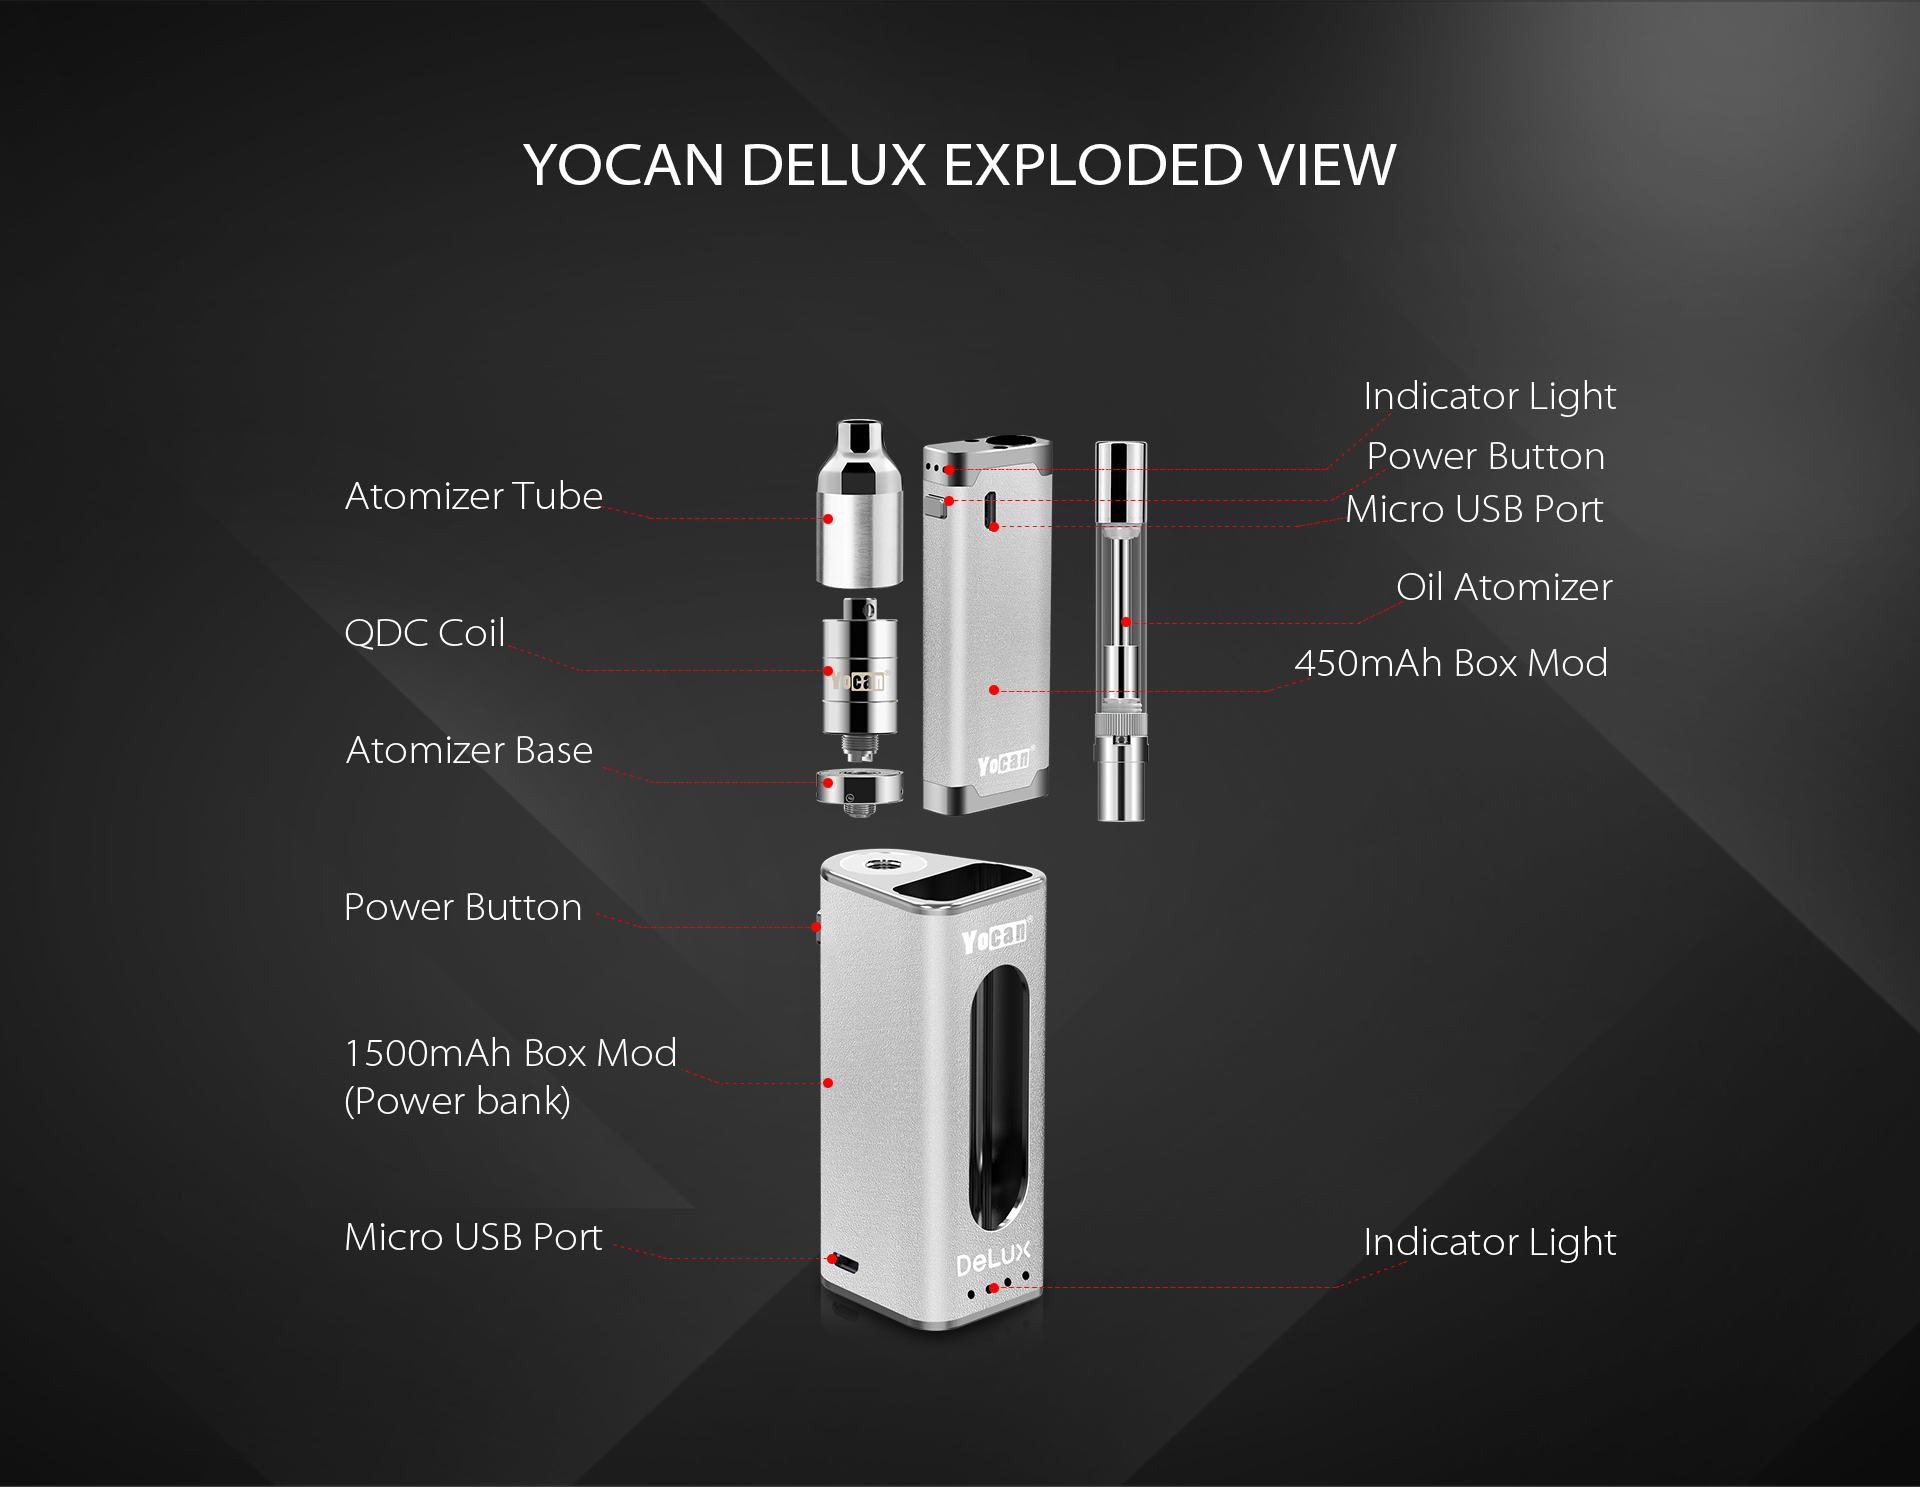 Yocan DeLux exploded view.